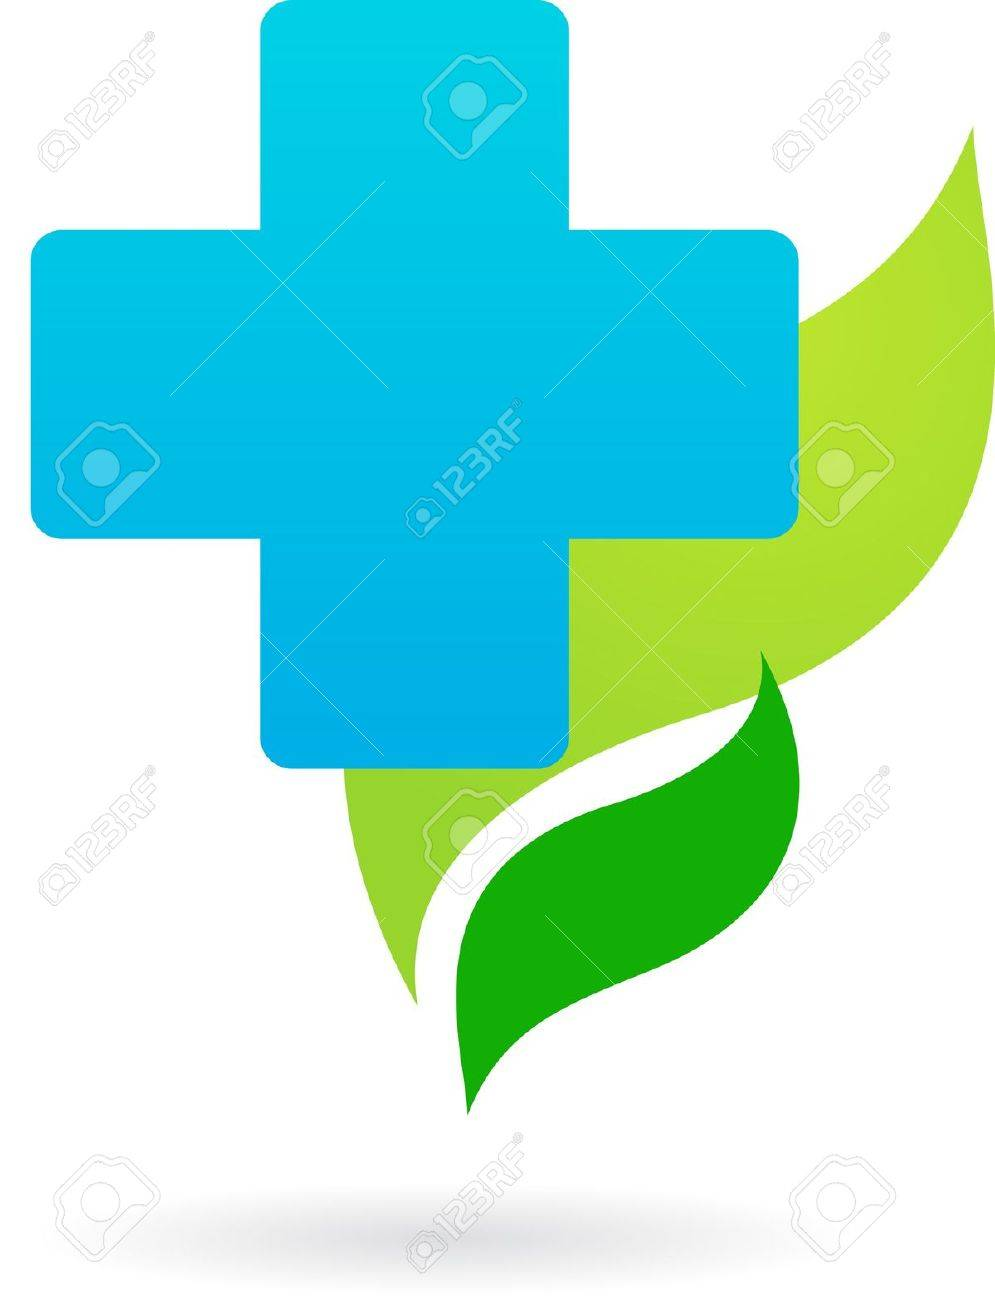 Humanitarian  Blue cross on a green leaves background Stock Photo - 6451820